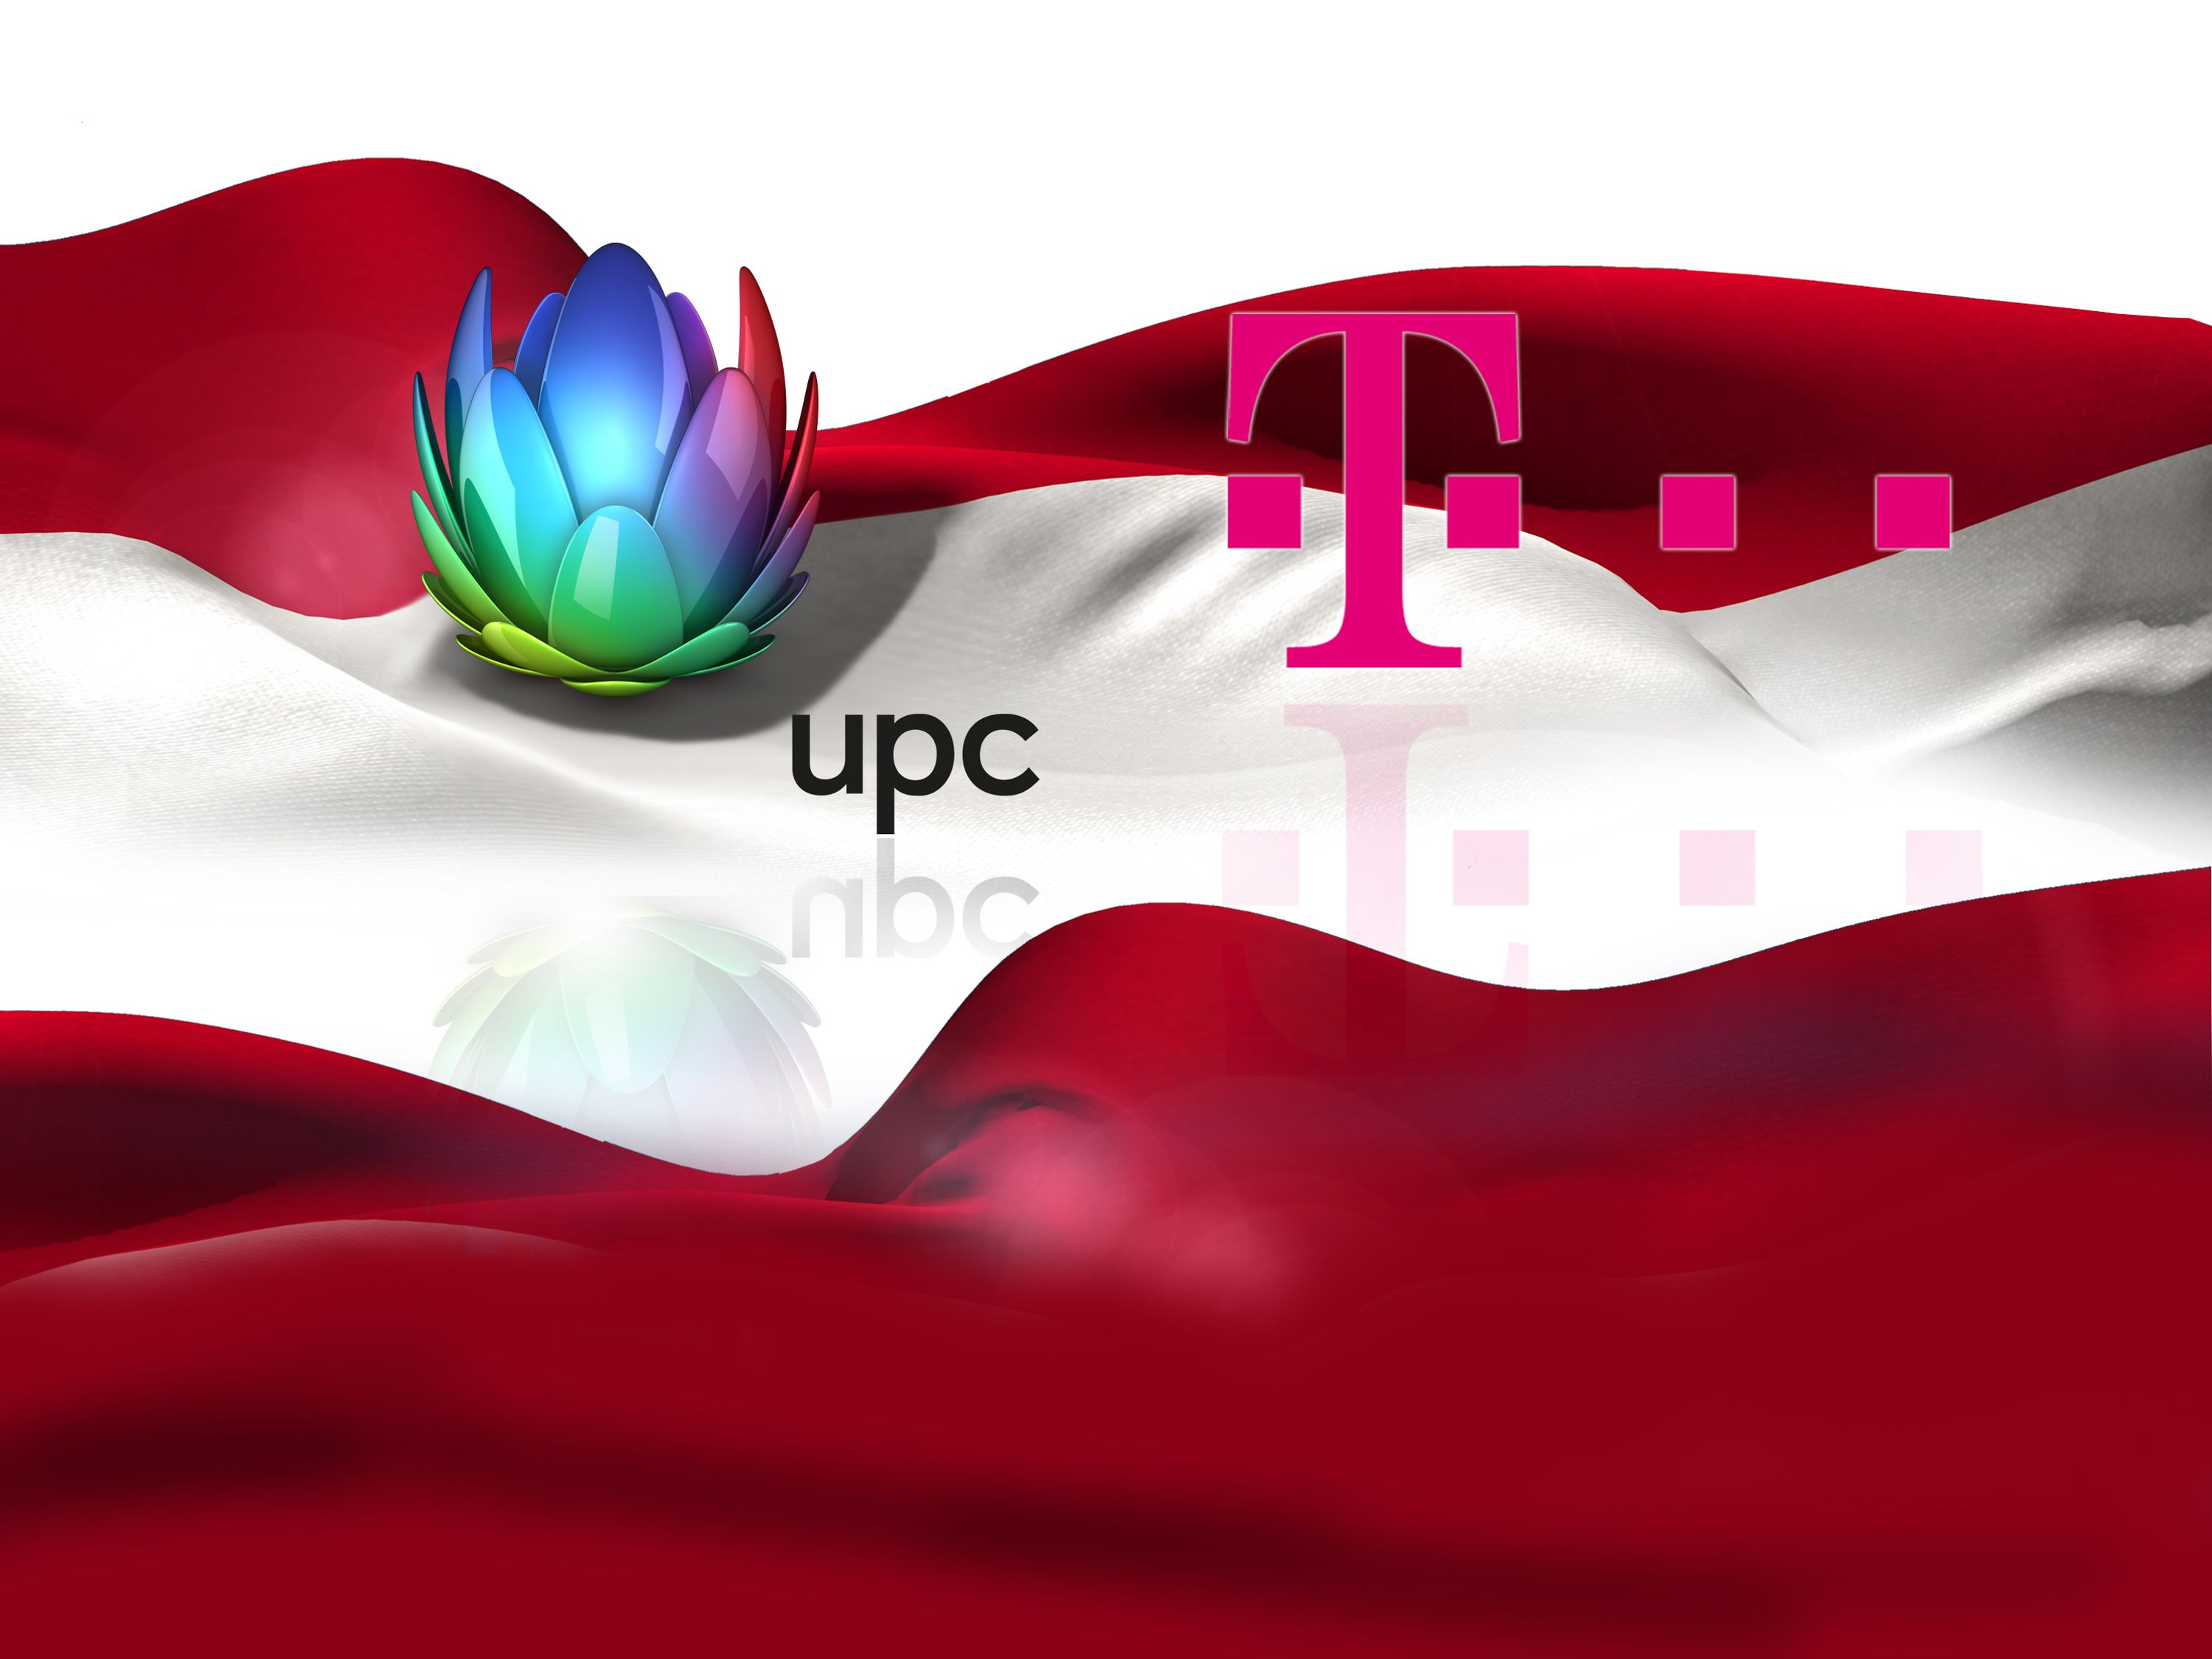 T-Mobile Austria acquires cable operator UPC Austria, creating a